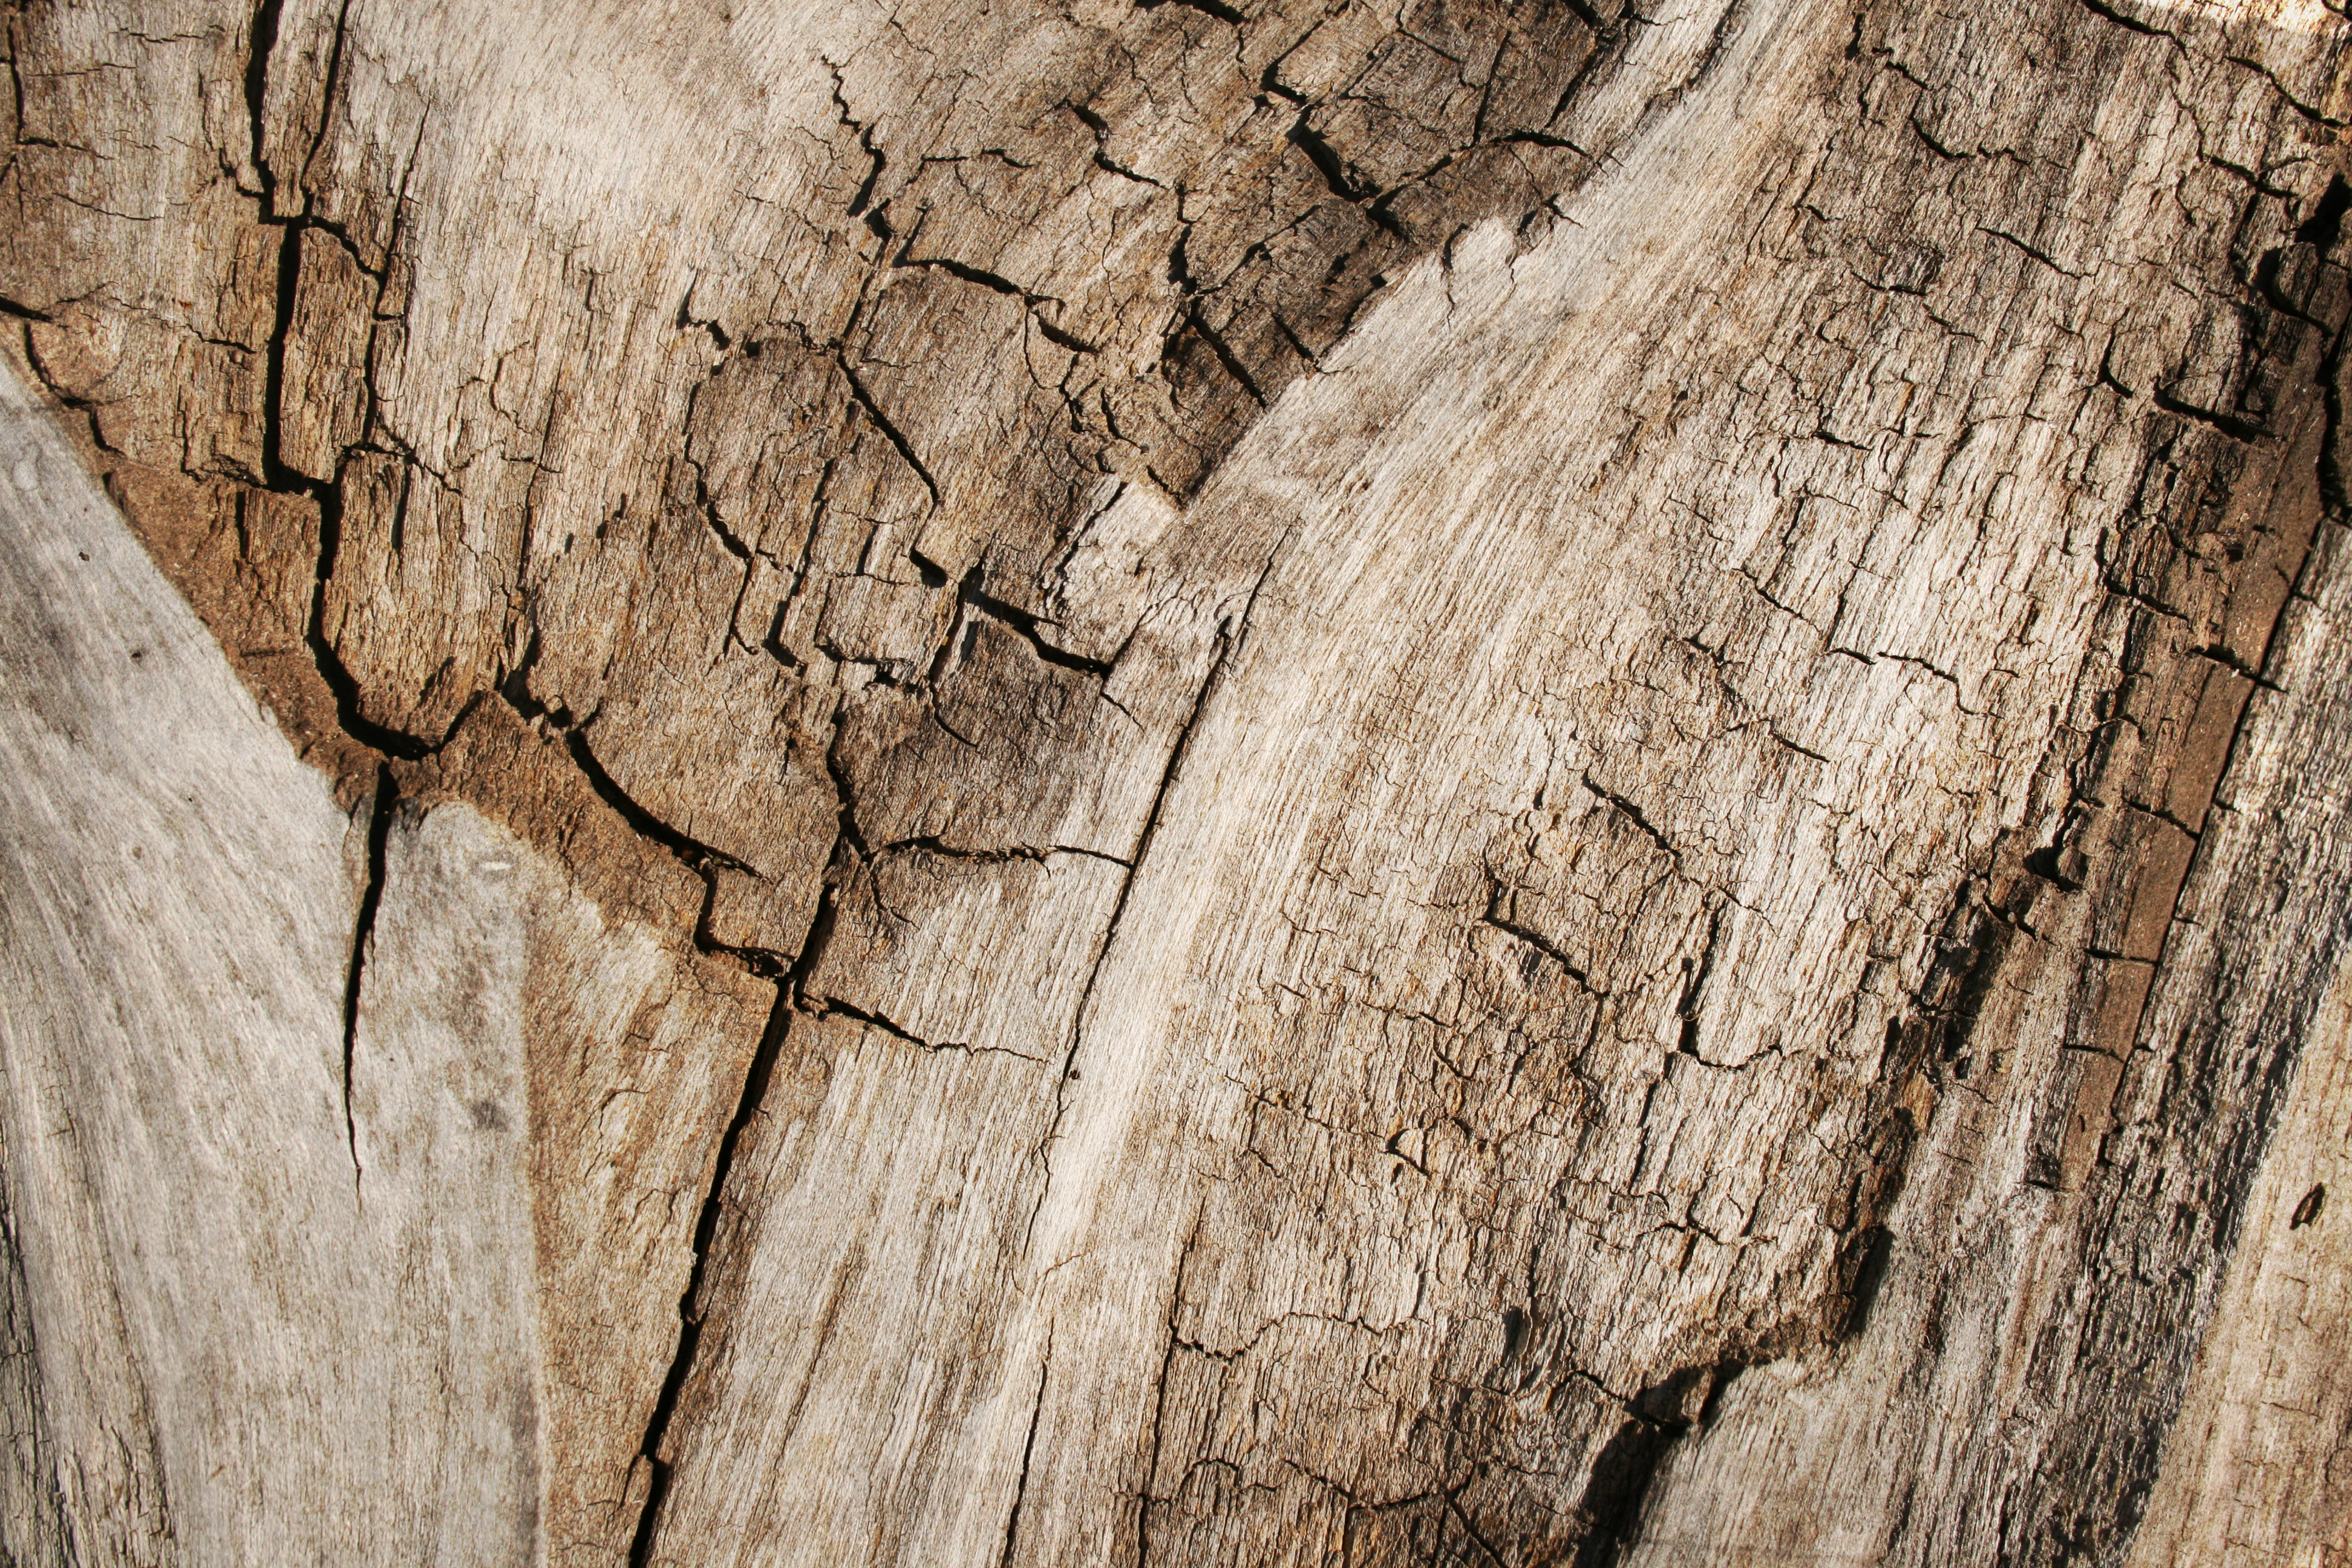 Grungy Cracked Wood, Backdrop, Rough, Material, Natural, HQ Photo